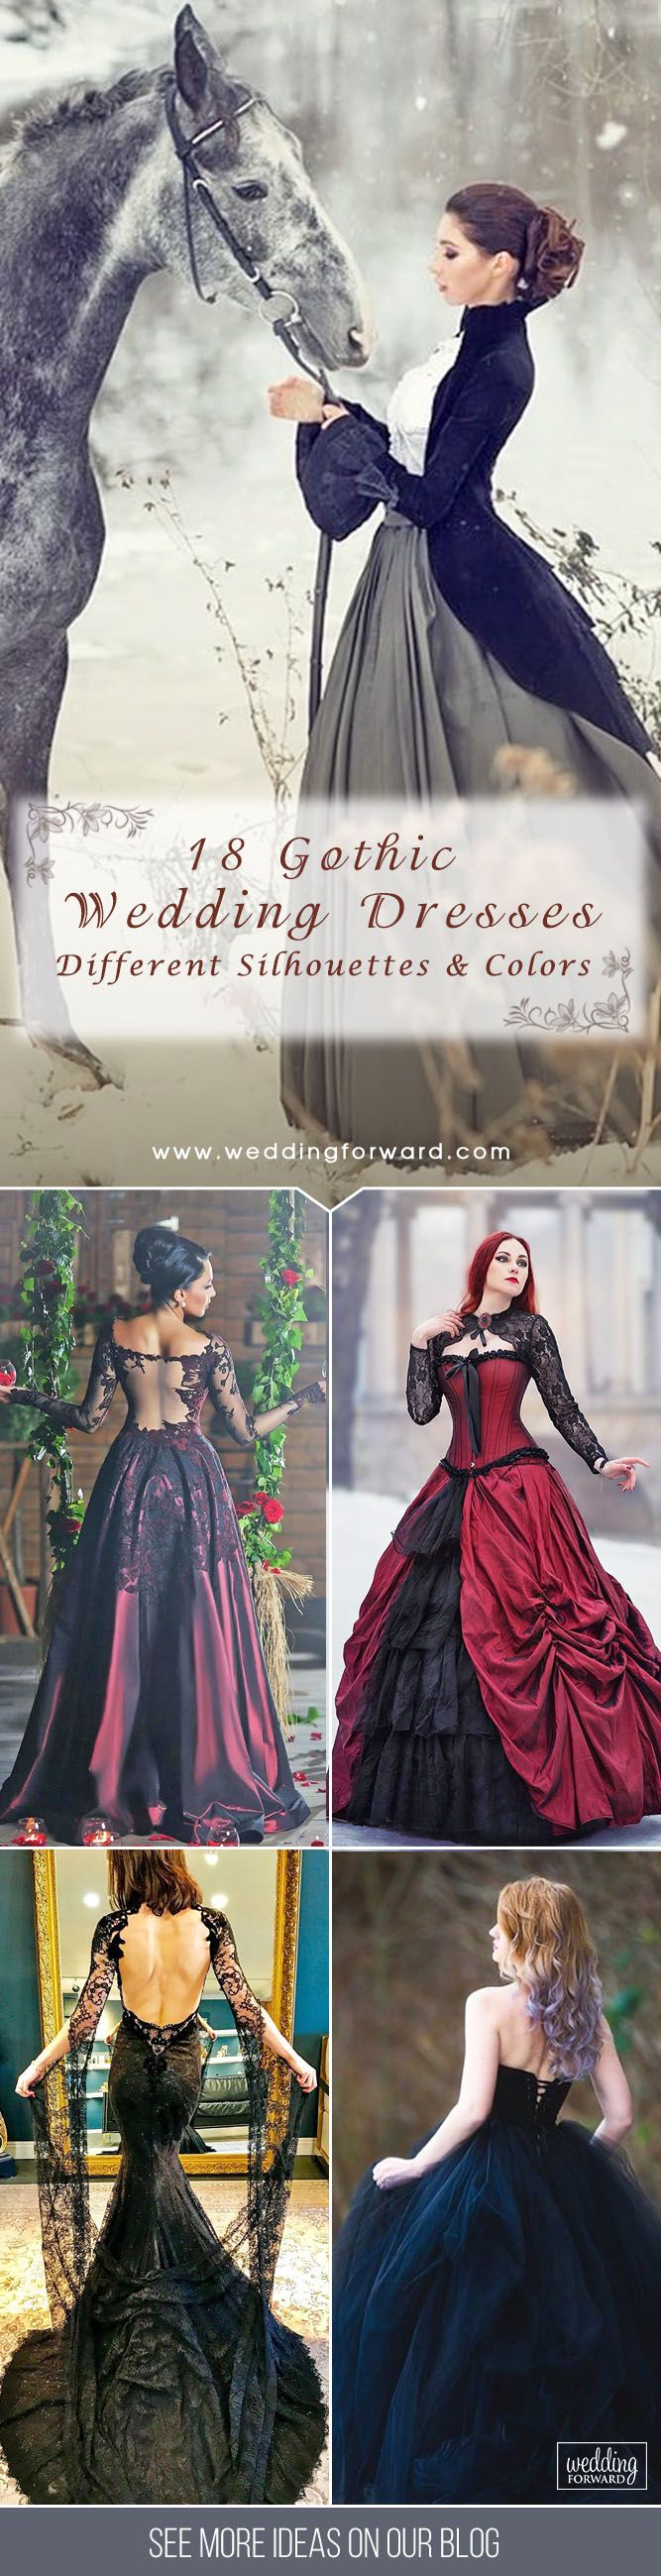 18 Gothic Wedding Dresses: Challenging Traditions ❤ You are wrong if sure that Gothic wedding dresses are only black. Check out these dark romance bridal gowns in different silhouettes and colors. See more: http://www.weddingforward.com/gothic-wedding-dresses/ #wedding #dresses #gothic